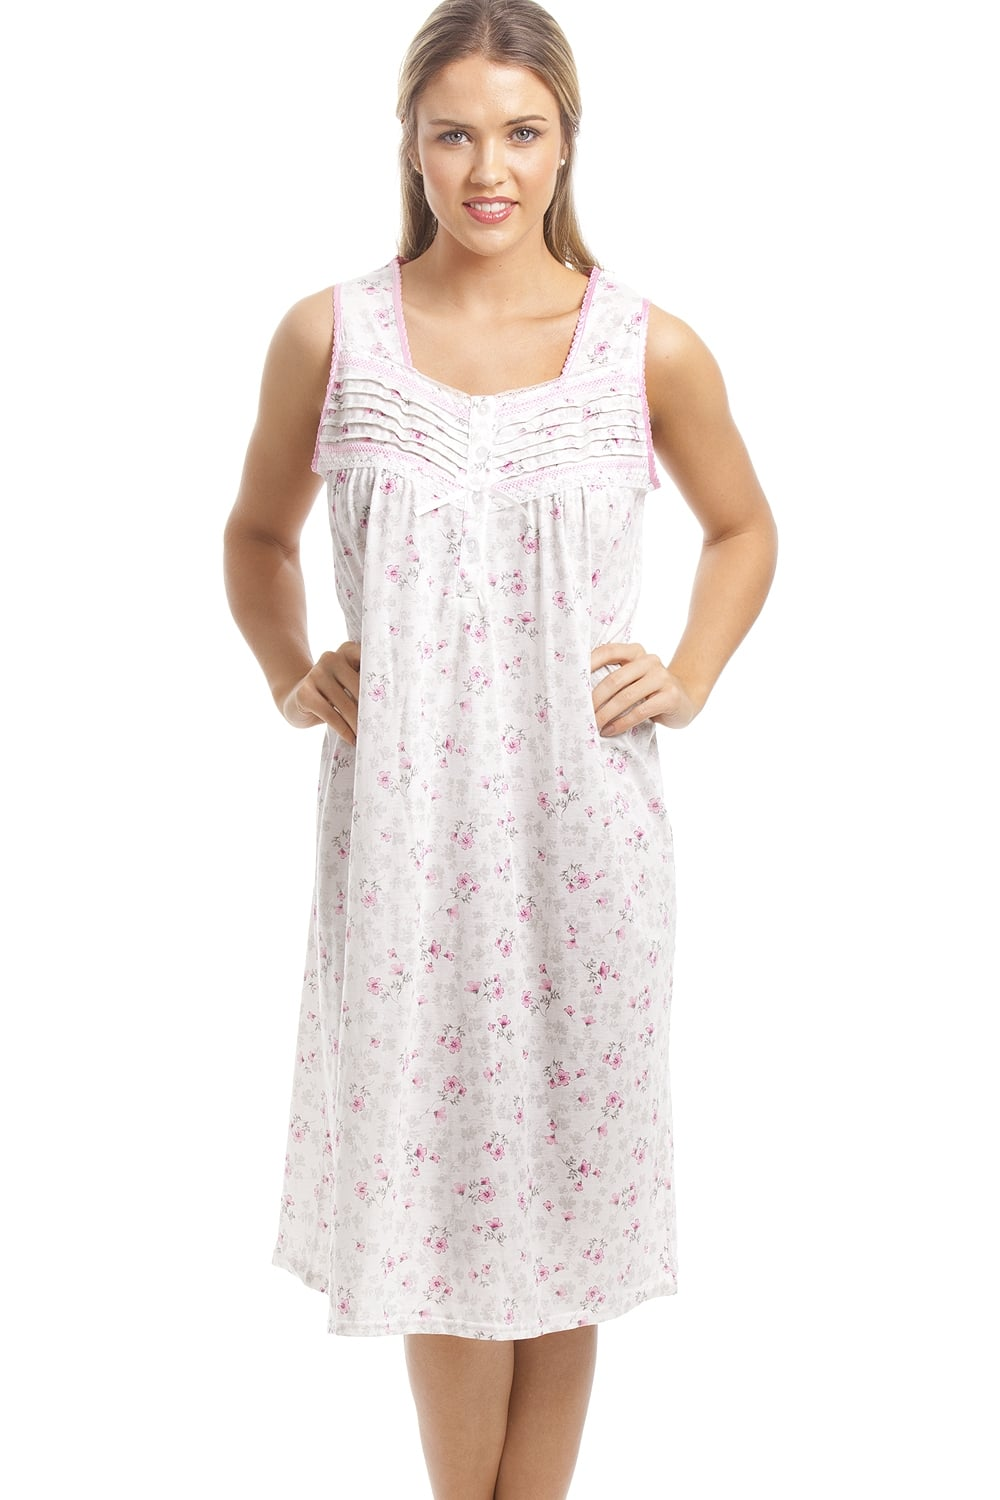 Camille Classic Pink Floral Print White Sleeveless Nightdress 1b619a277